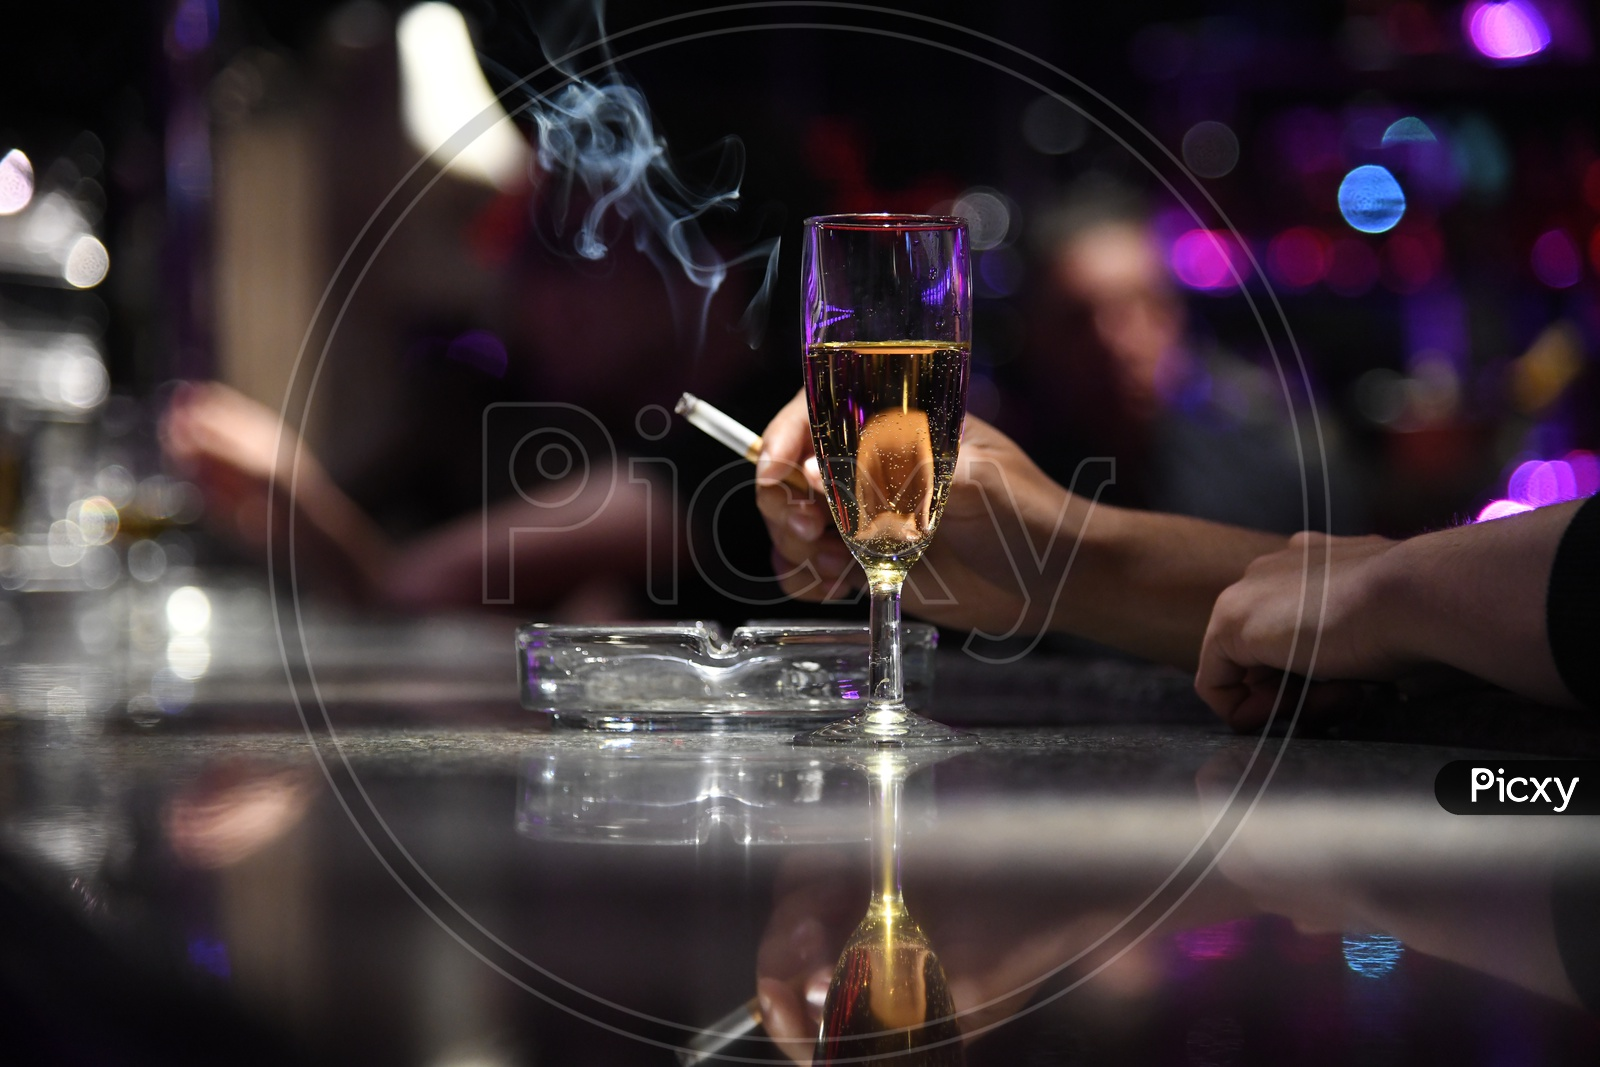 A Wine Glass With a Man Holding Cigarette in Hand Closeup